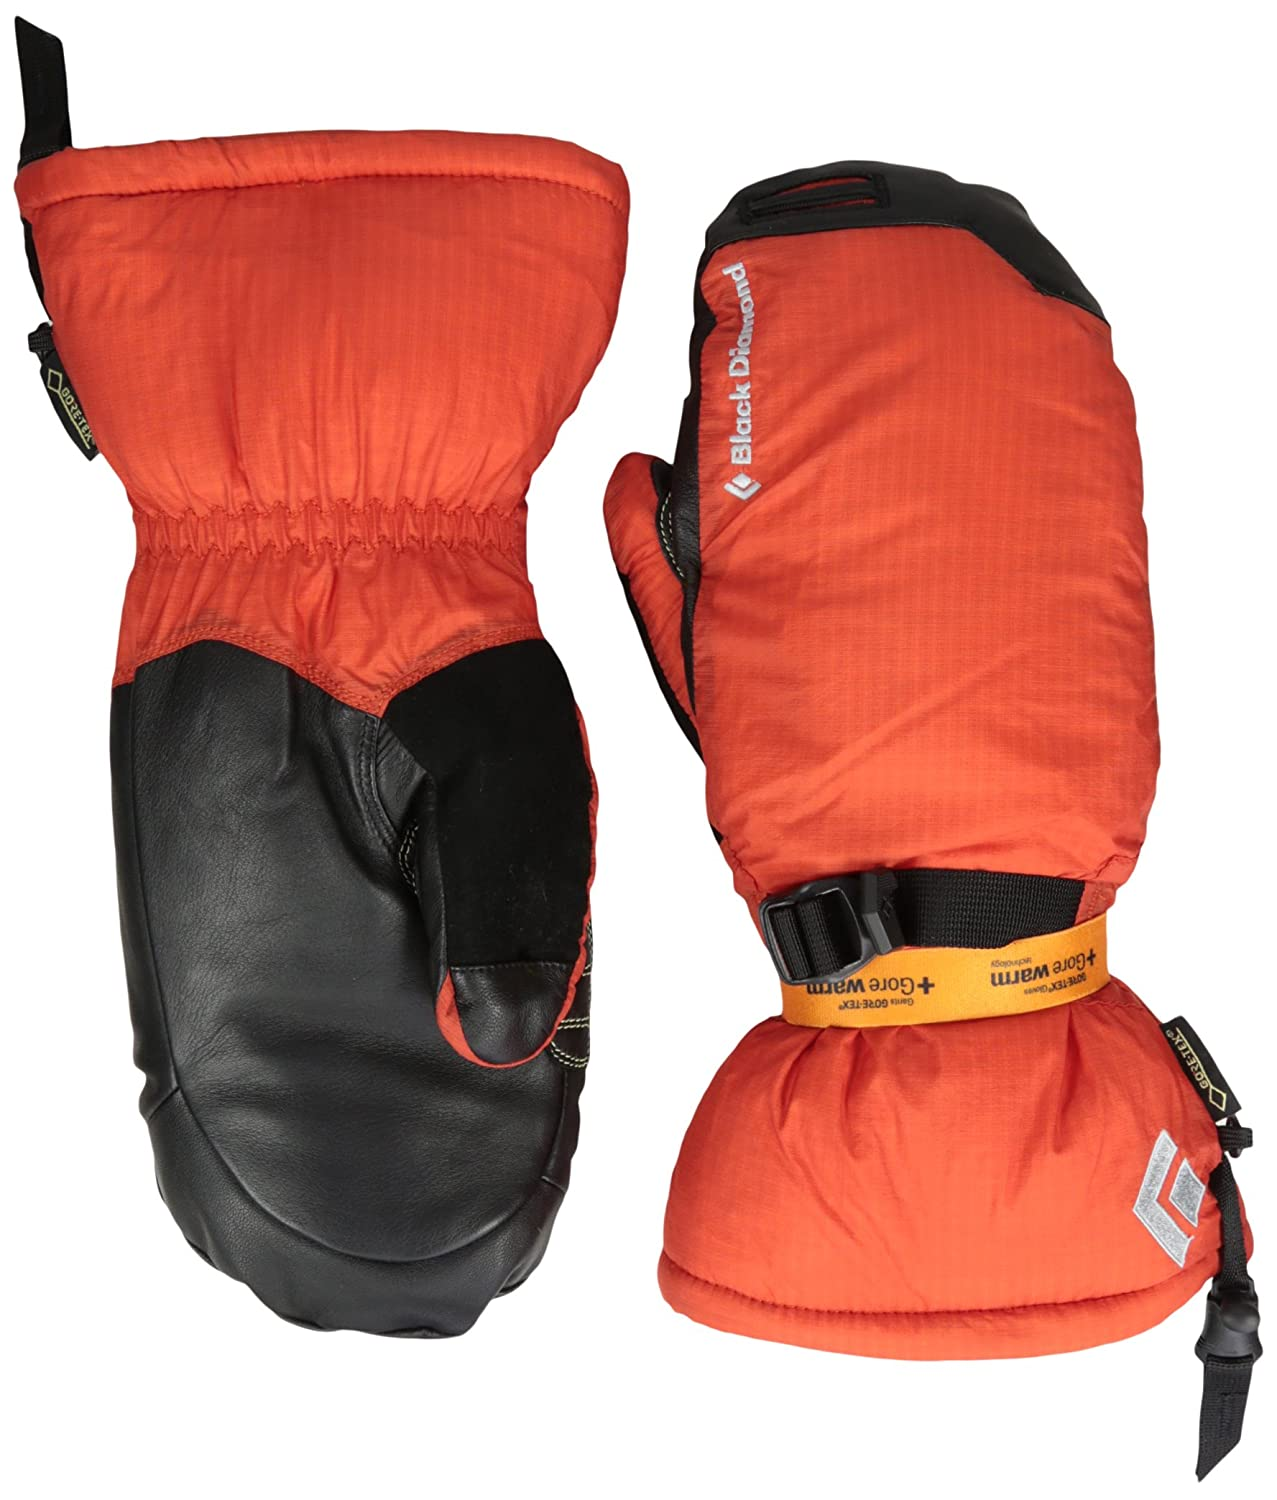 Schwarz Diamond Super Light Mitts mit Goretex